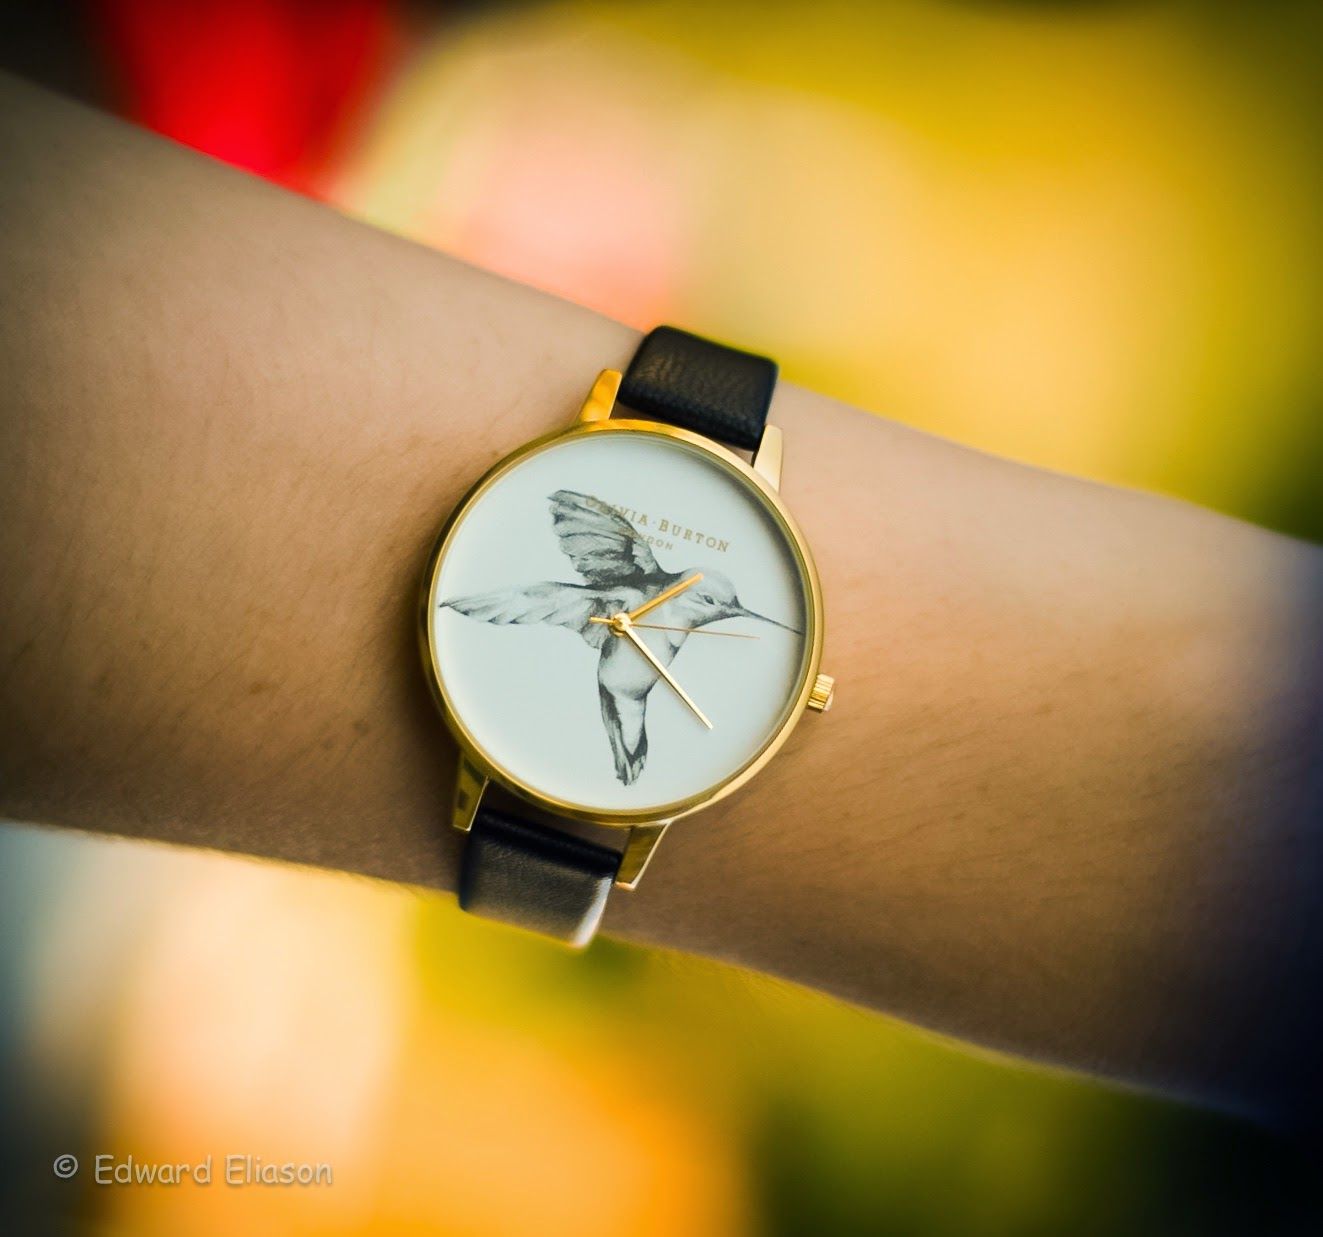 olivia burton watch, hummingbird watch, mod cloth watch, photography, expensive watches,